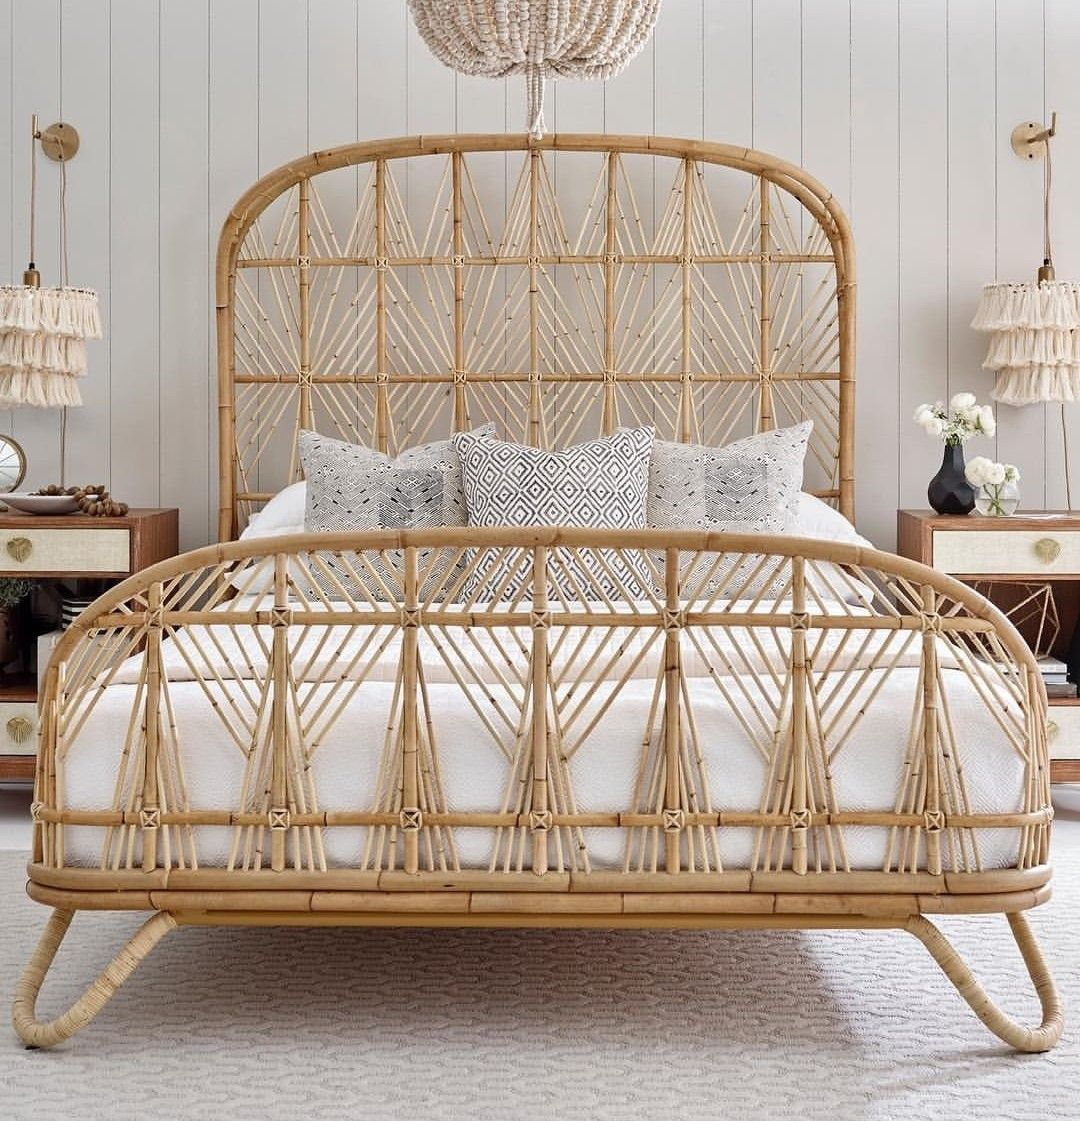 Pin by bohoasis on Boho Decor | Rattan bed, Bedroom ... on Modern Boho Bed Frame  id=12910